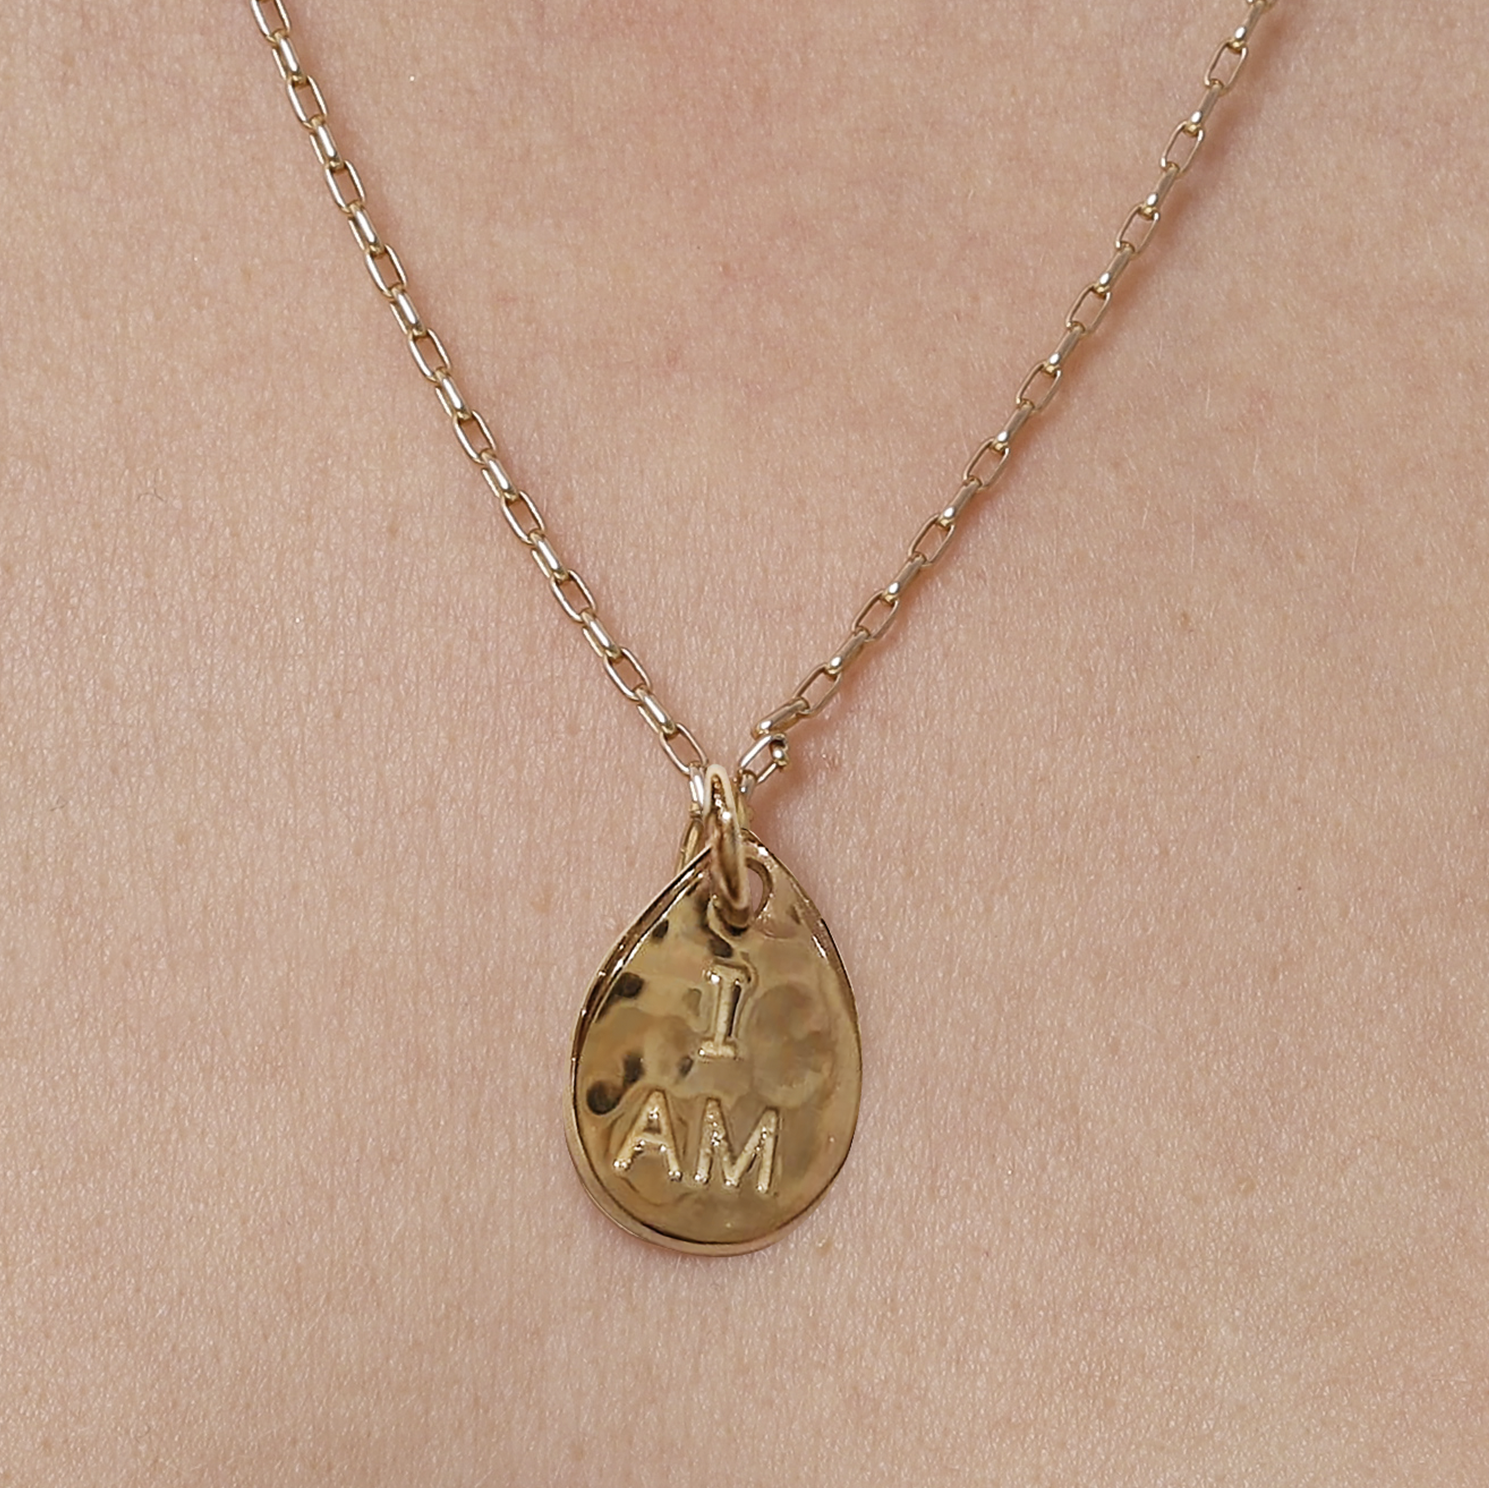 I Am He Is 18ct Gold Plated Seed Necklace I Am So Many Things Great birthstone necklace for any lady you know!! i am he is 18ct gold plated seed necklace